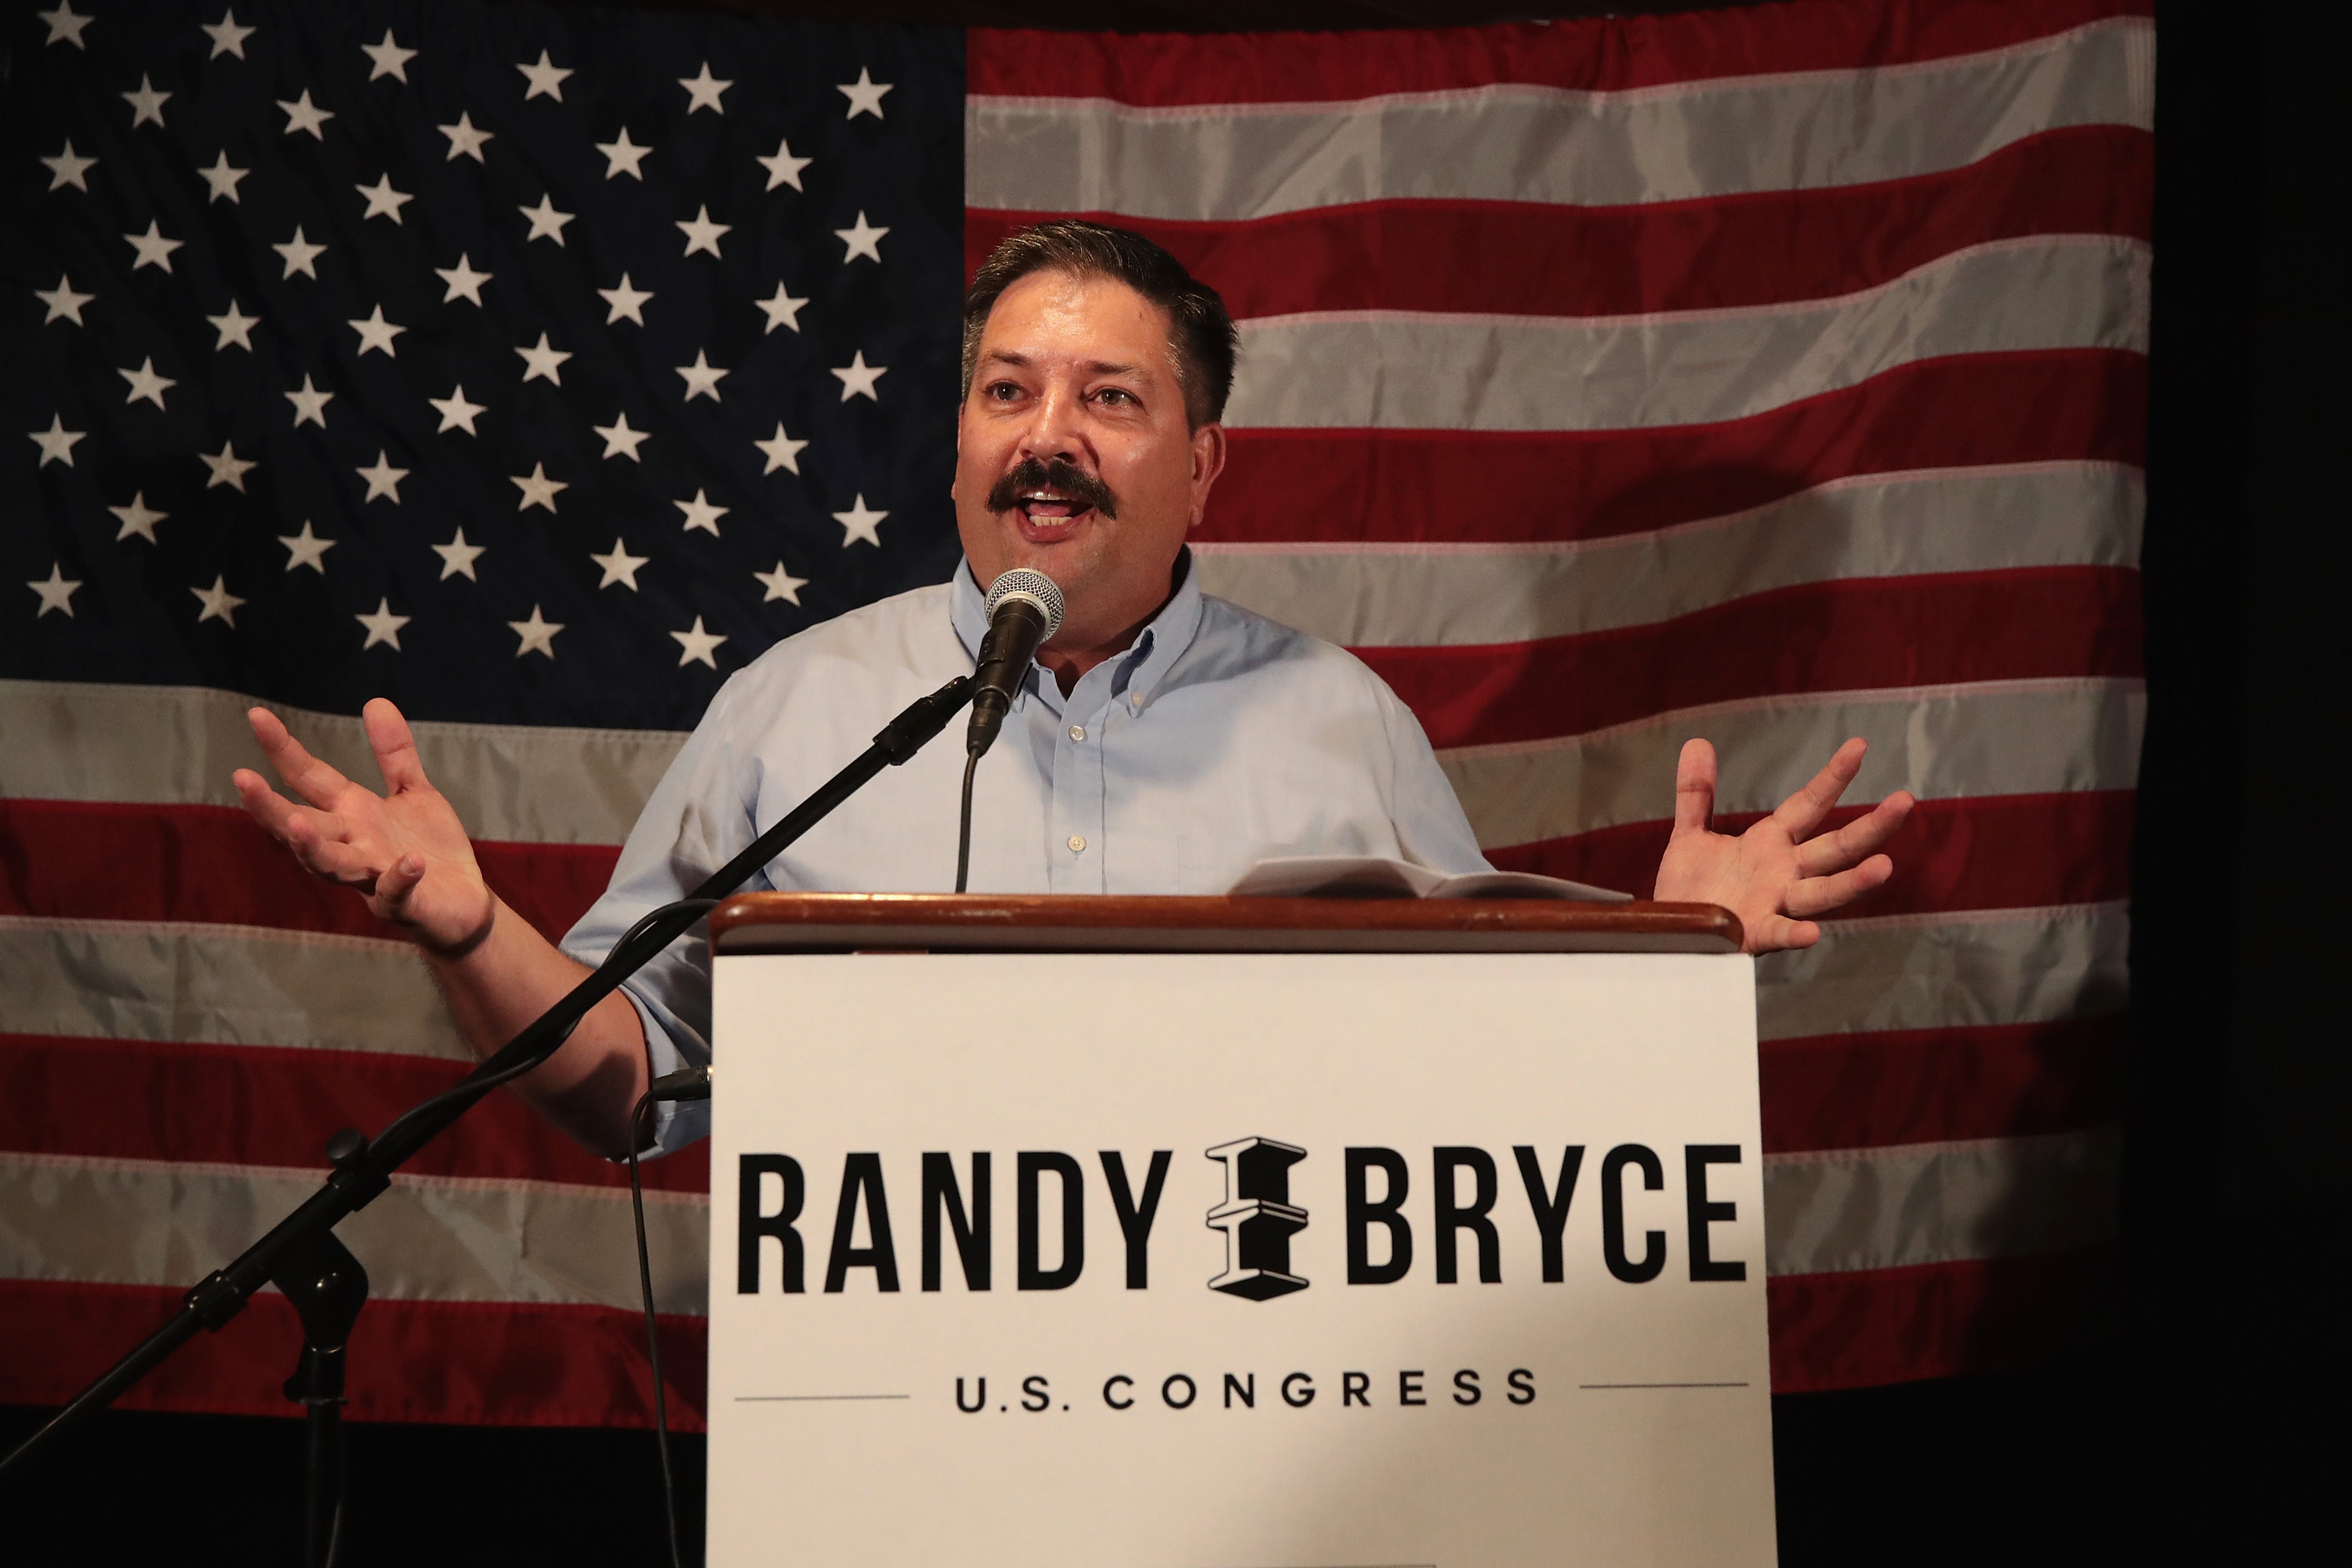 Democratic congressional candidate Randy Bryce speaks to supporters at an election-night rally after being declared the winner in the Wisconsin Democratic primary on August 14, 2018 in Racine, Wisconsin. Scott Olson/Getty Images